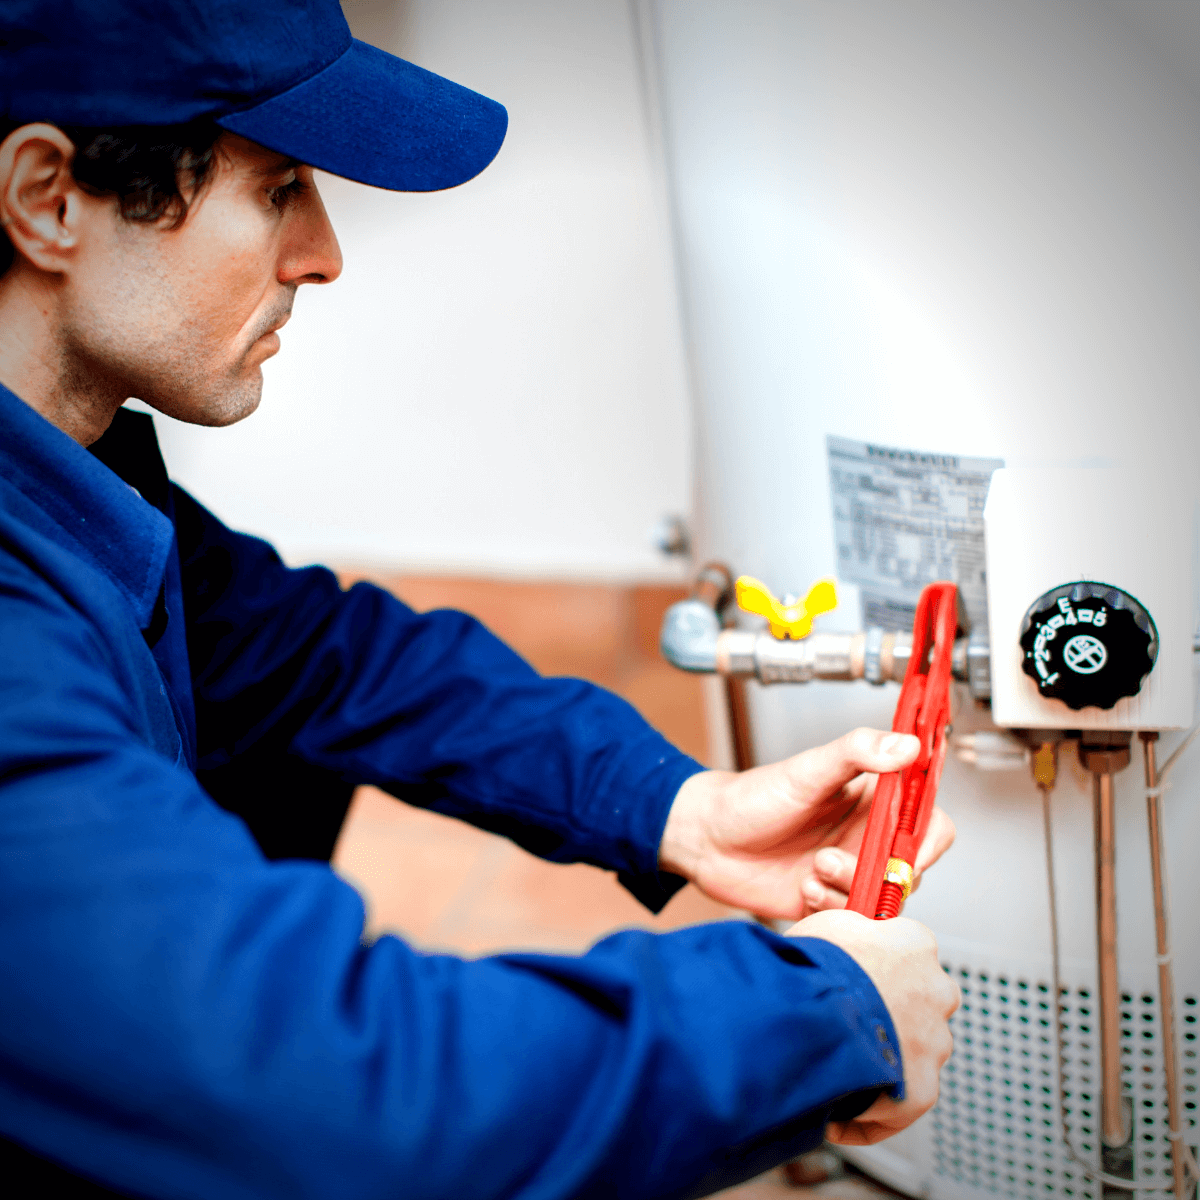 Lookout Are Water Heater Rental Companies Taking Advantage Of Canadians? Our Team Investigates